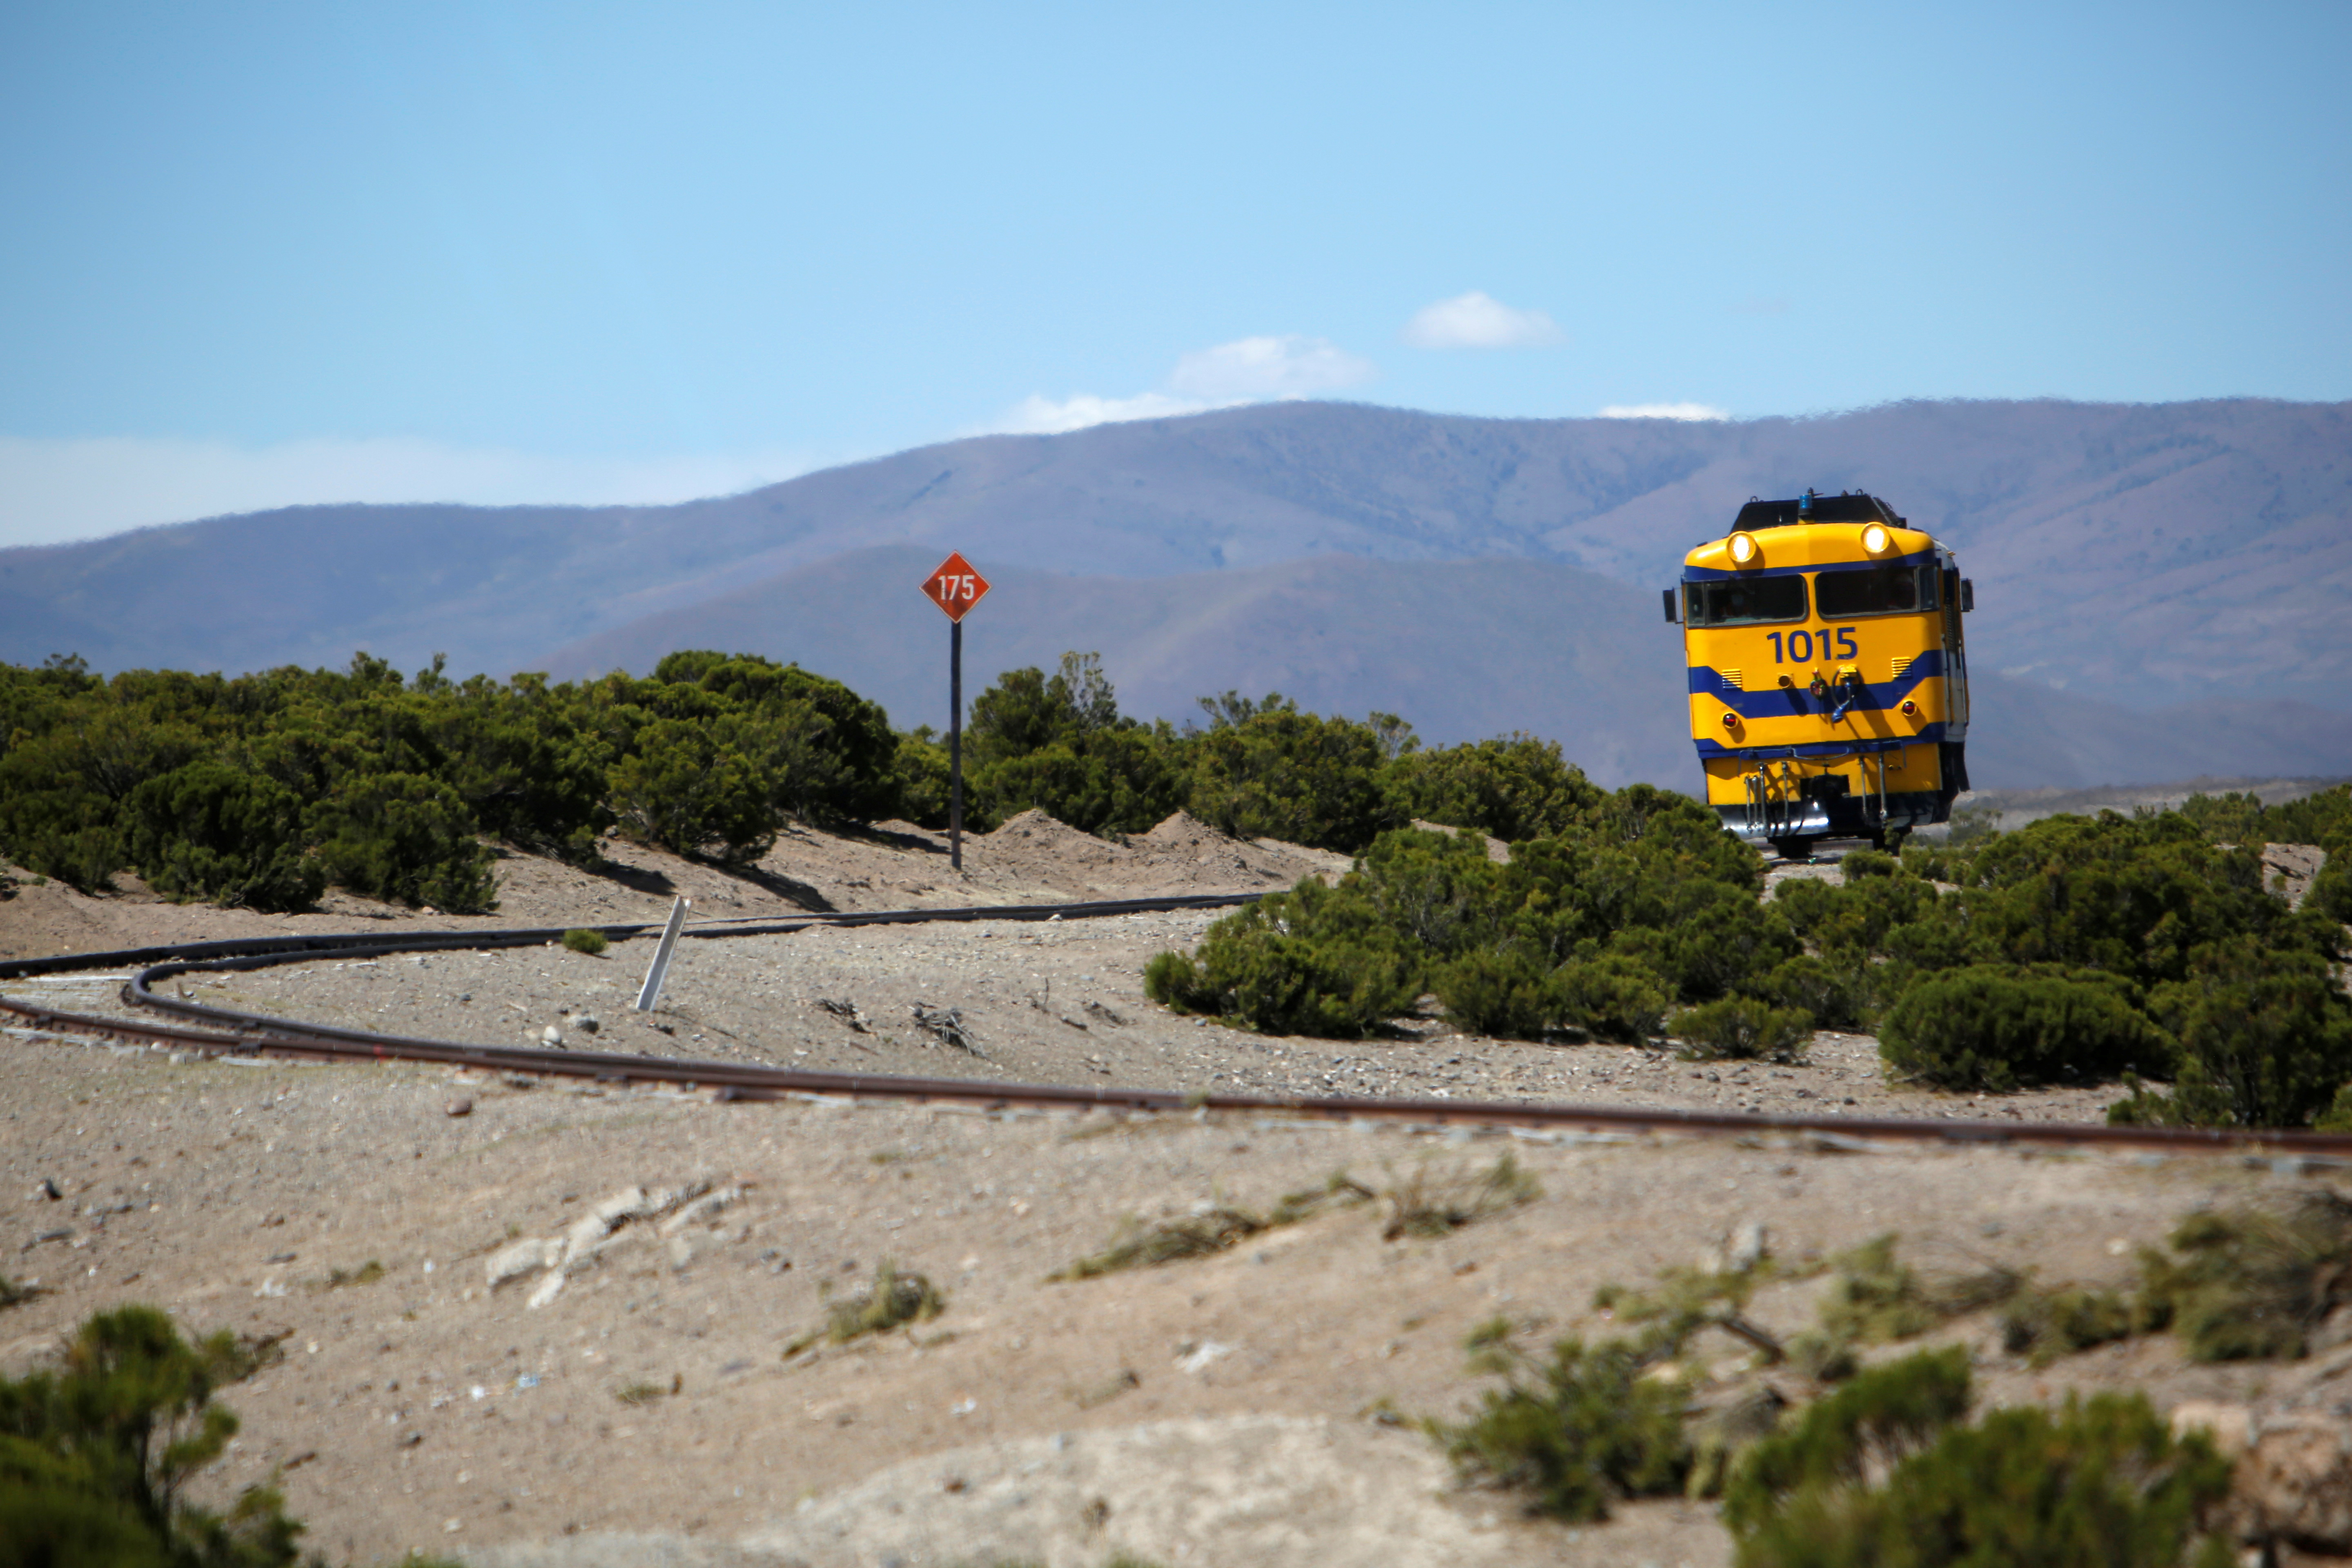 A locomotive of Bolivia's Andean Railway Company moves to cross the border between Bolivia and Chile to pick up iron coil, in Charana, Bolivia May 7, 2021. Picture taken May 7, 2021. REUTERS/Manuel Claure